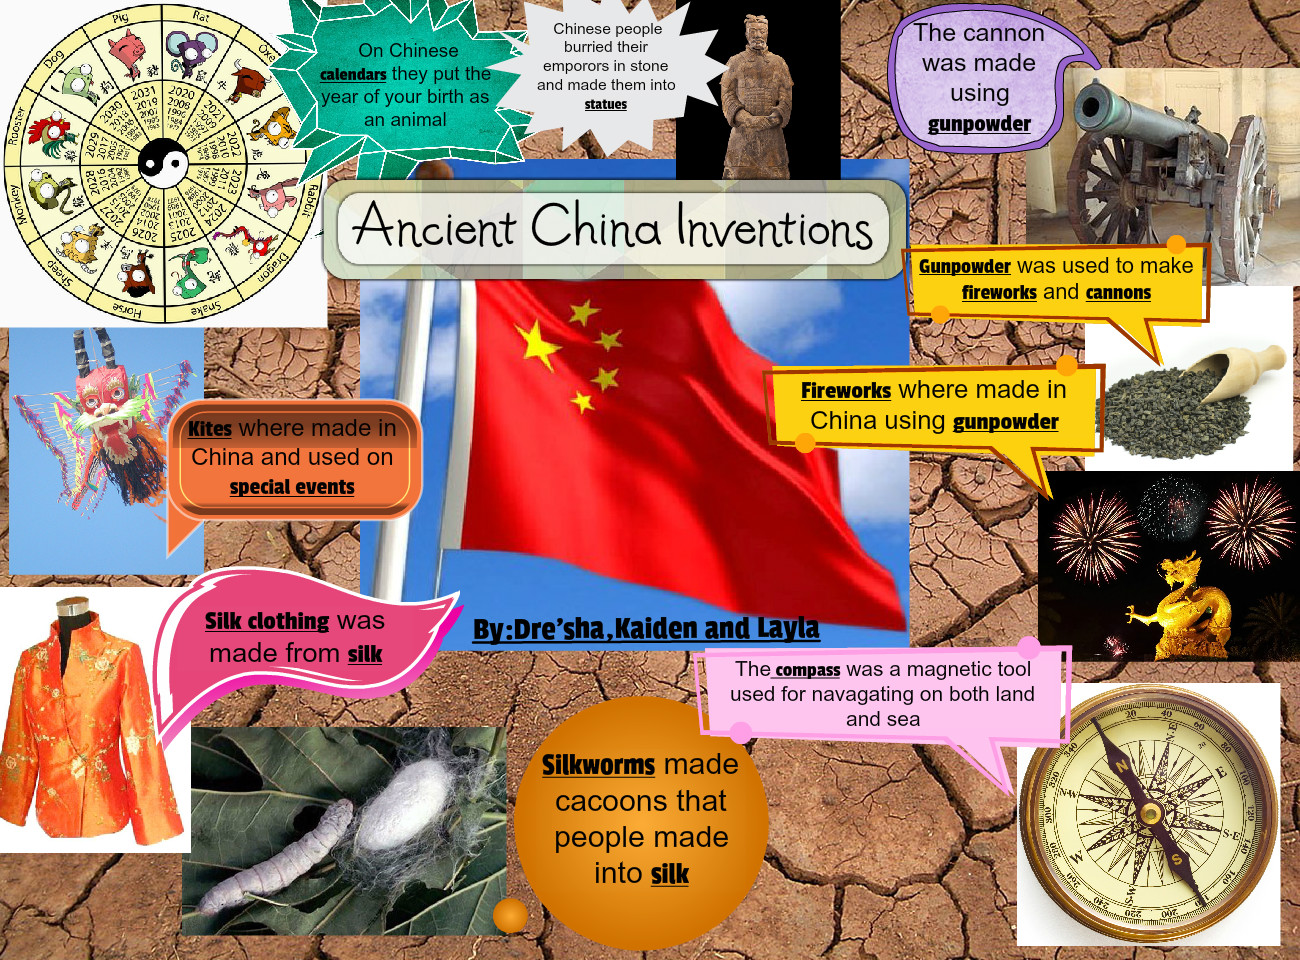 Ancient China Inventions Text Images Music Video